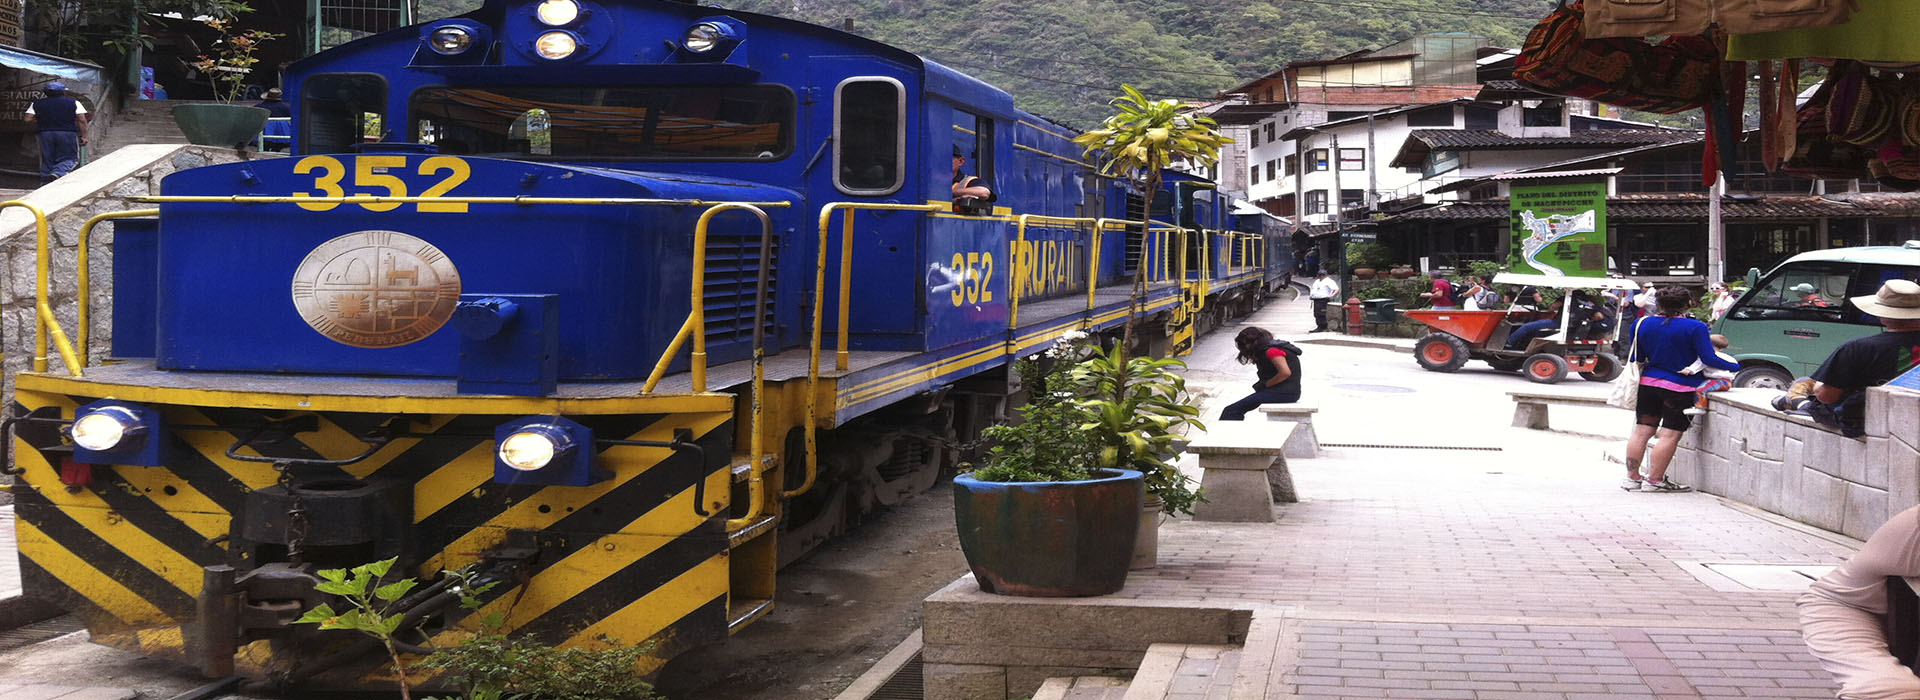 Machu Picchu by train 2 days